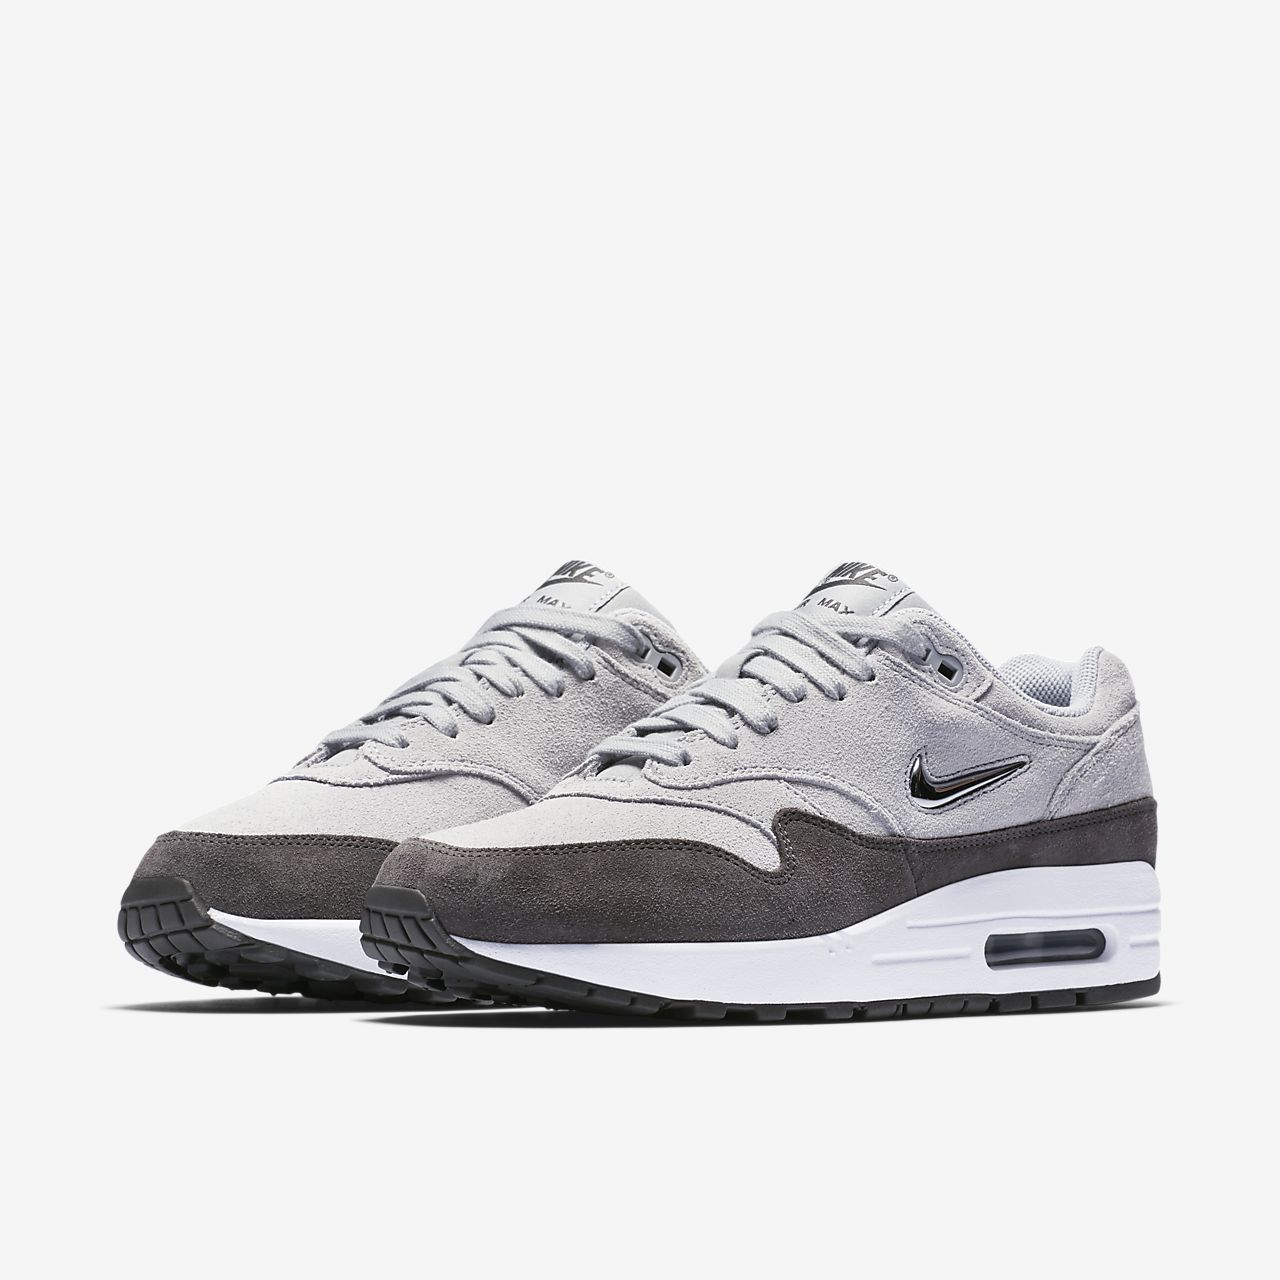 red grey womens nike air max 1 premium shoes. Black Bedroom Furniture Sets. Home Design Ideas